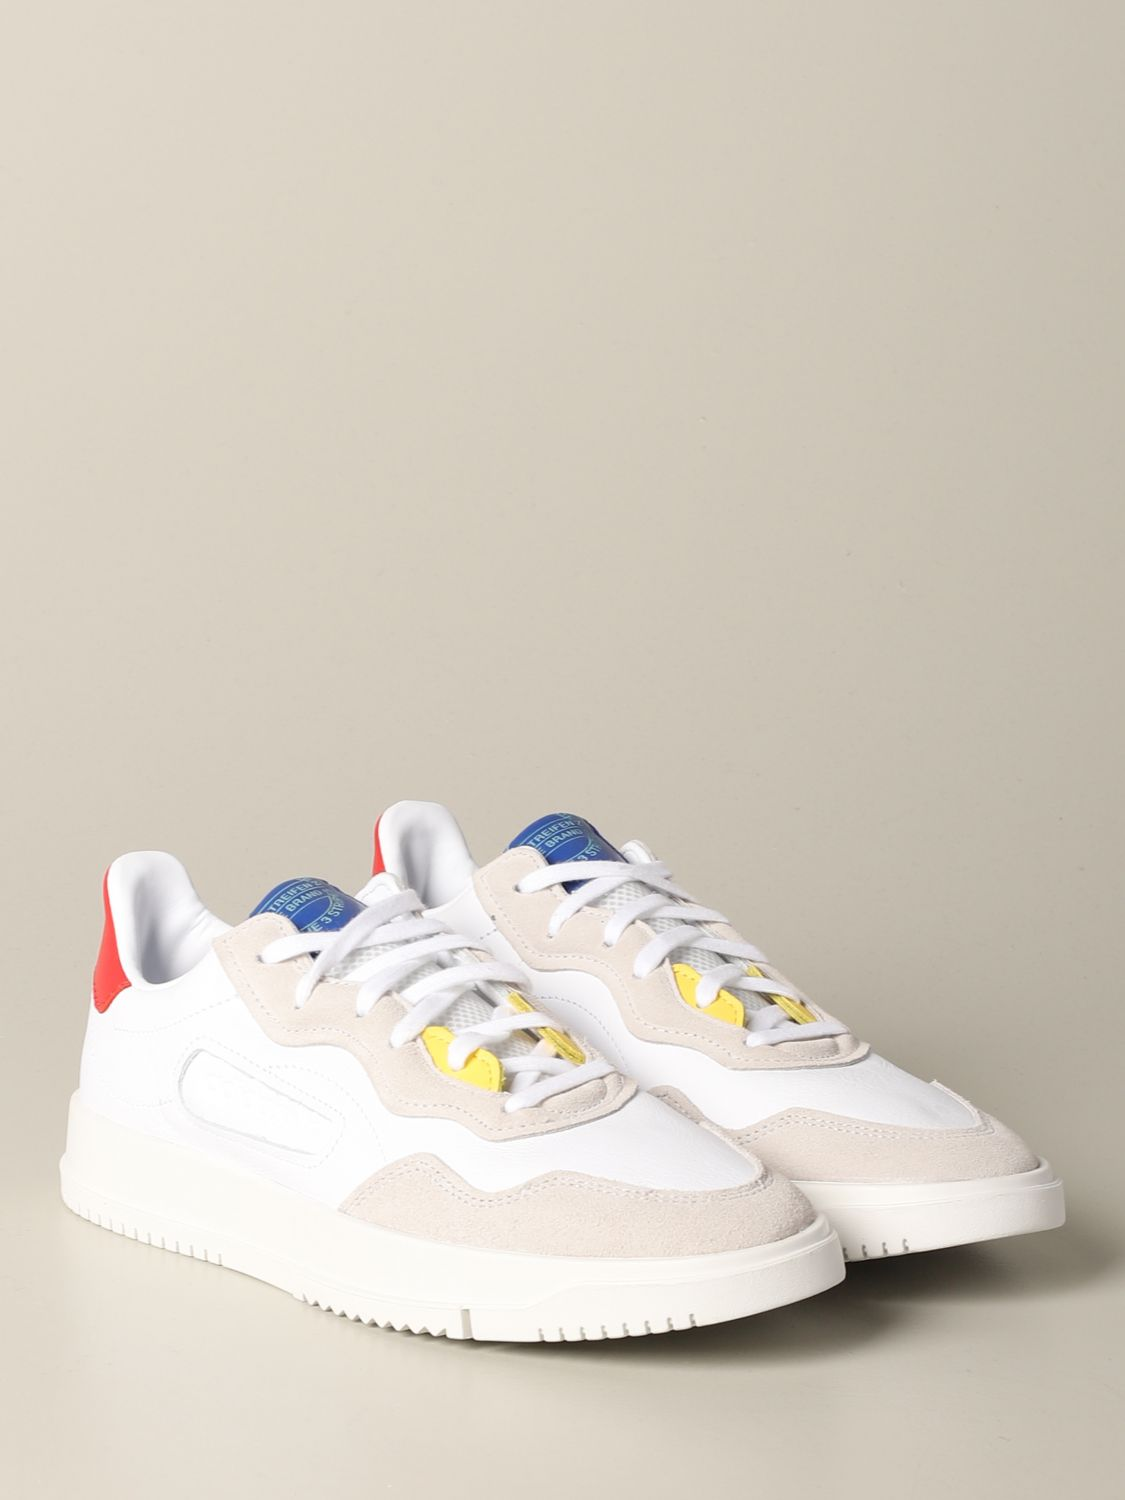 Sneakers Adidas Originals: Sneakers Supercourt premier Adidas Originals in pelle e camoscio bianco 2